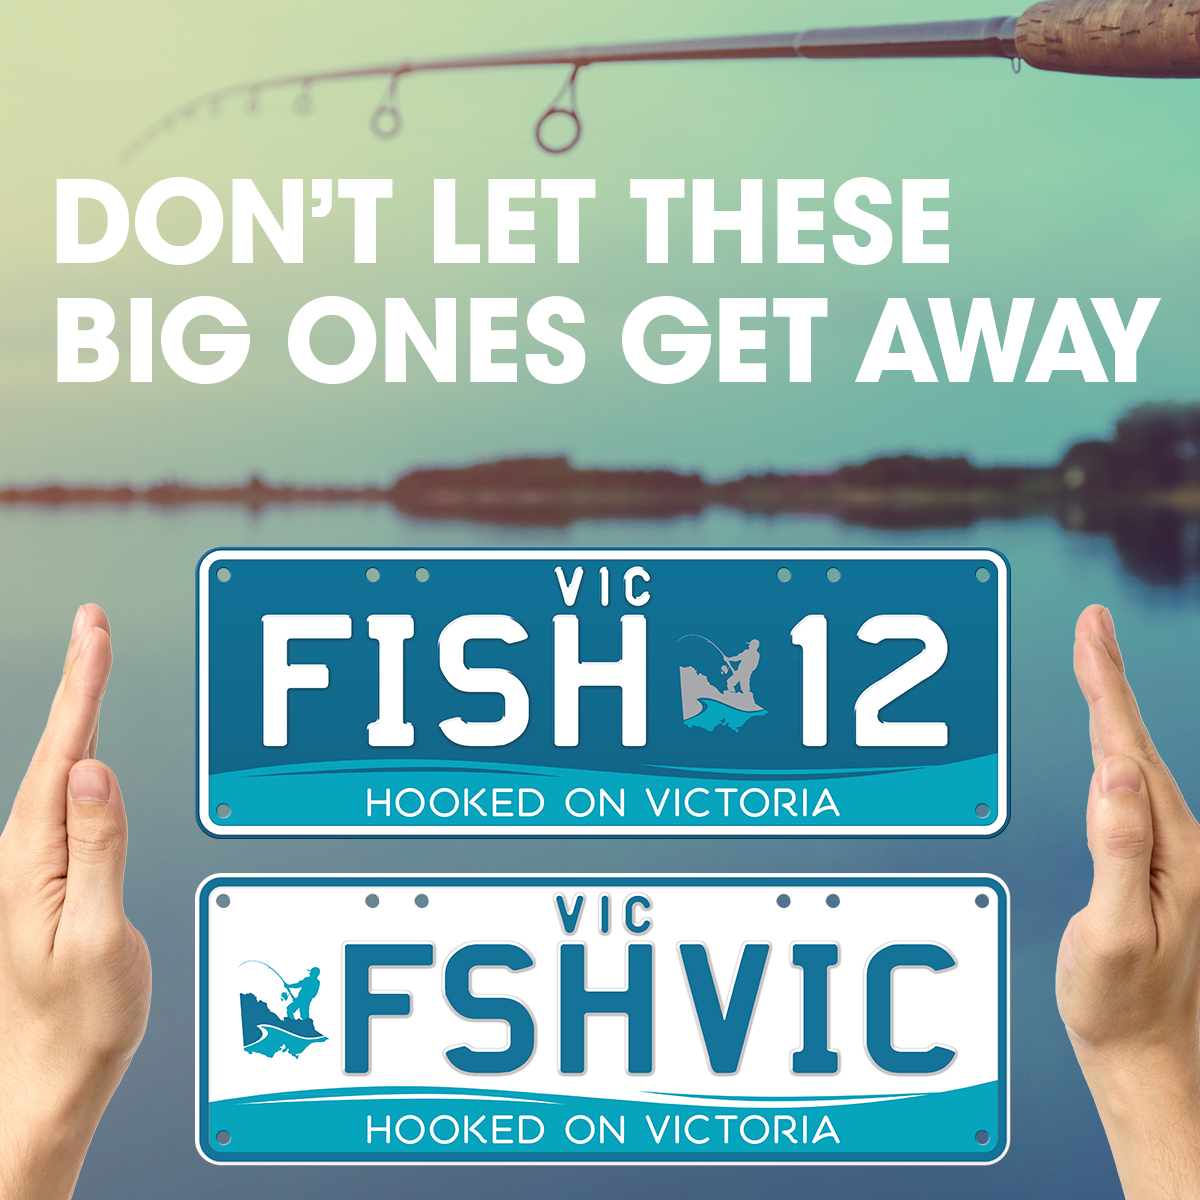 Victorians hooked on fishing with new custom plates - VFA